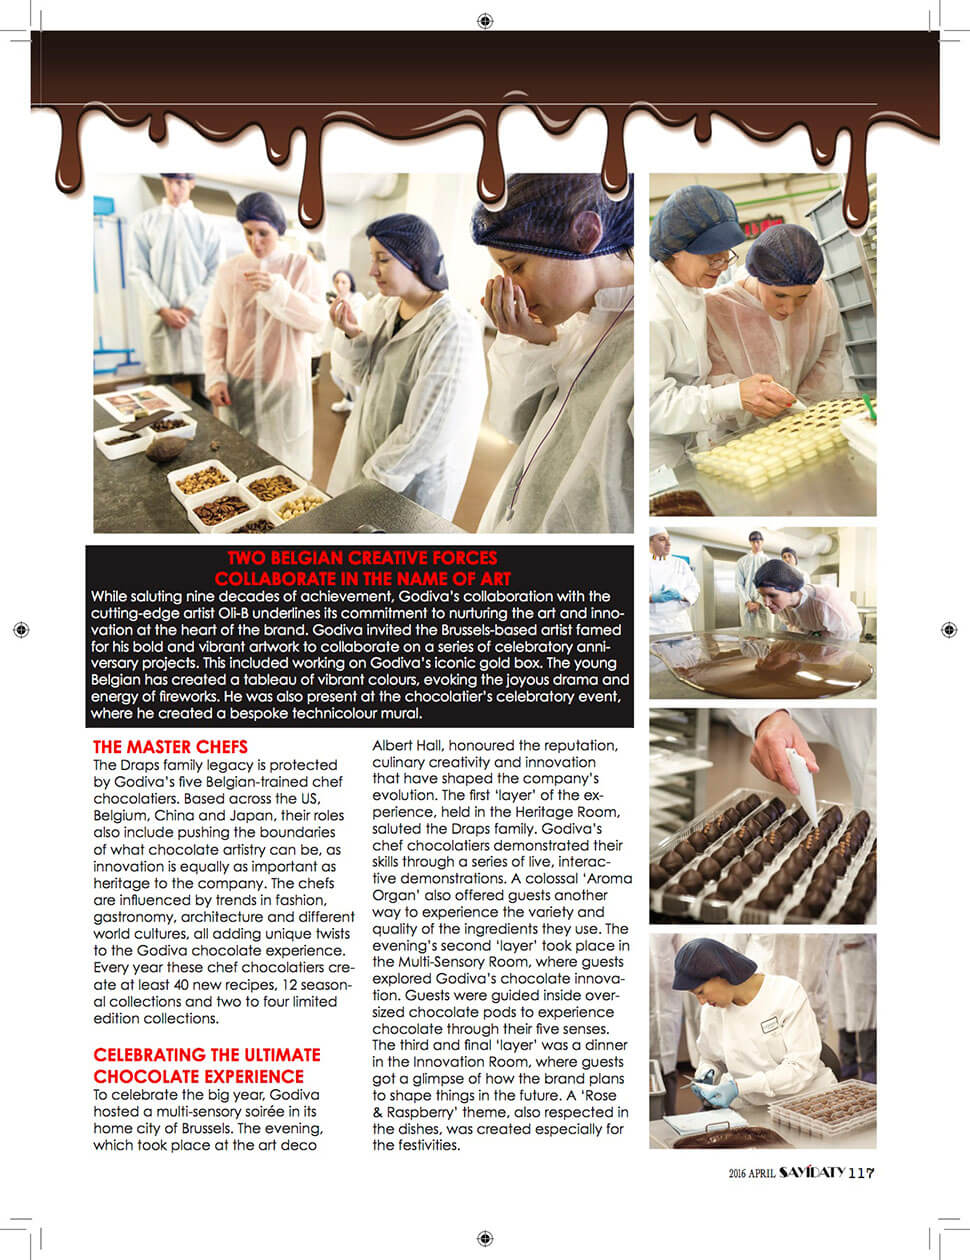 Godiva_Sayidaty English_April 2016_Page 117